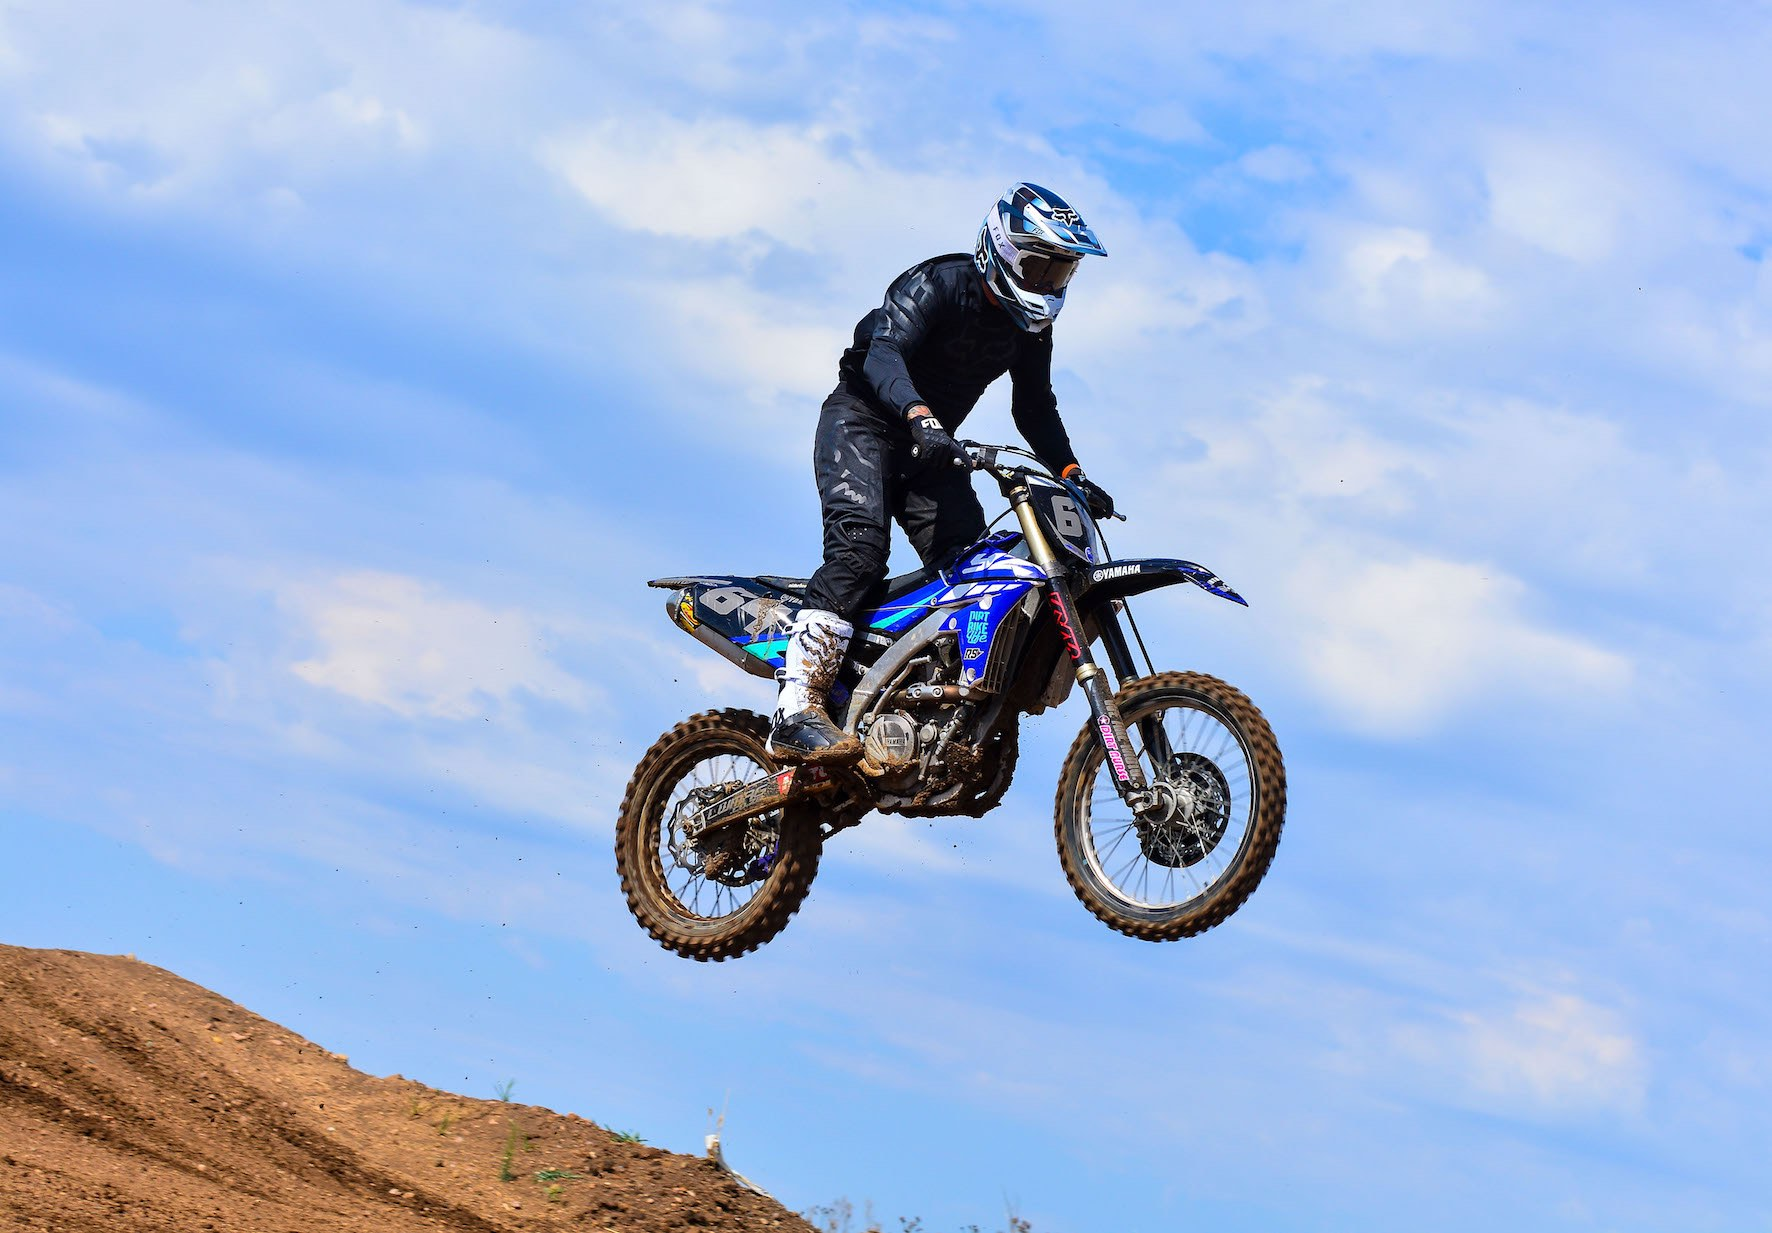 Putting the Fox V1 Helmet through its paces at the local MX track